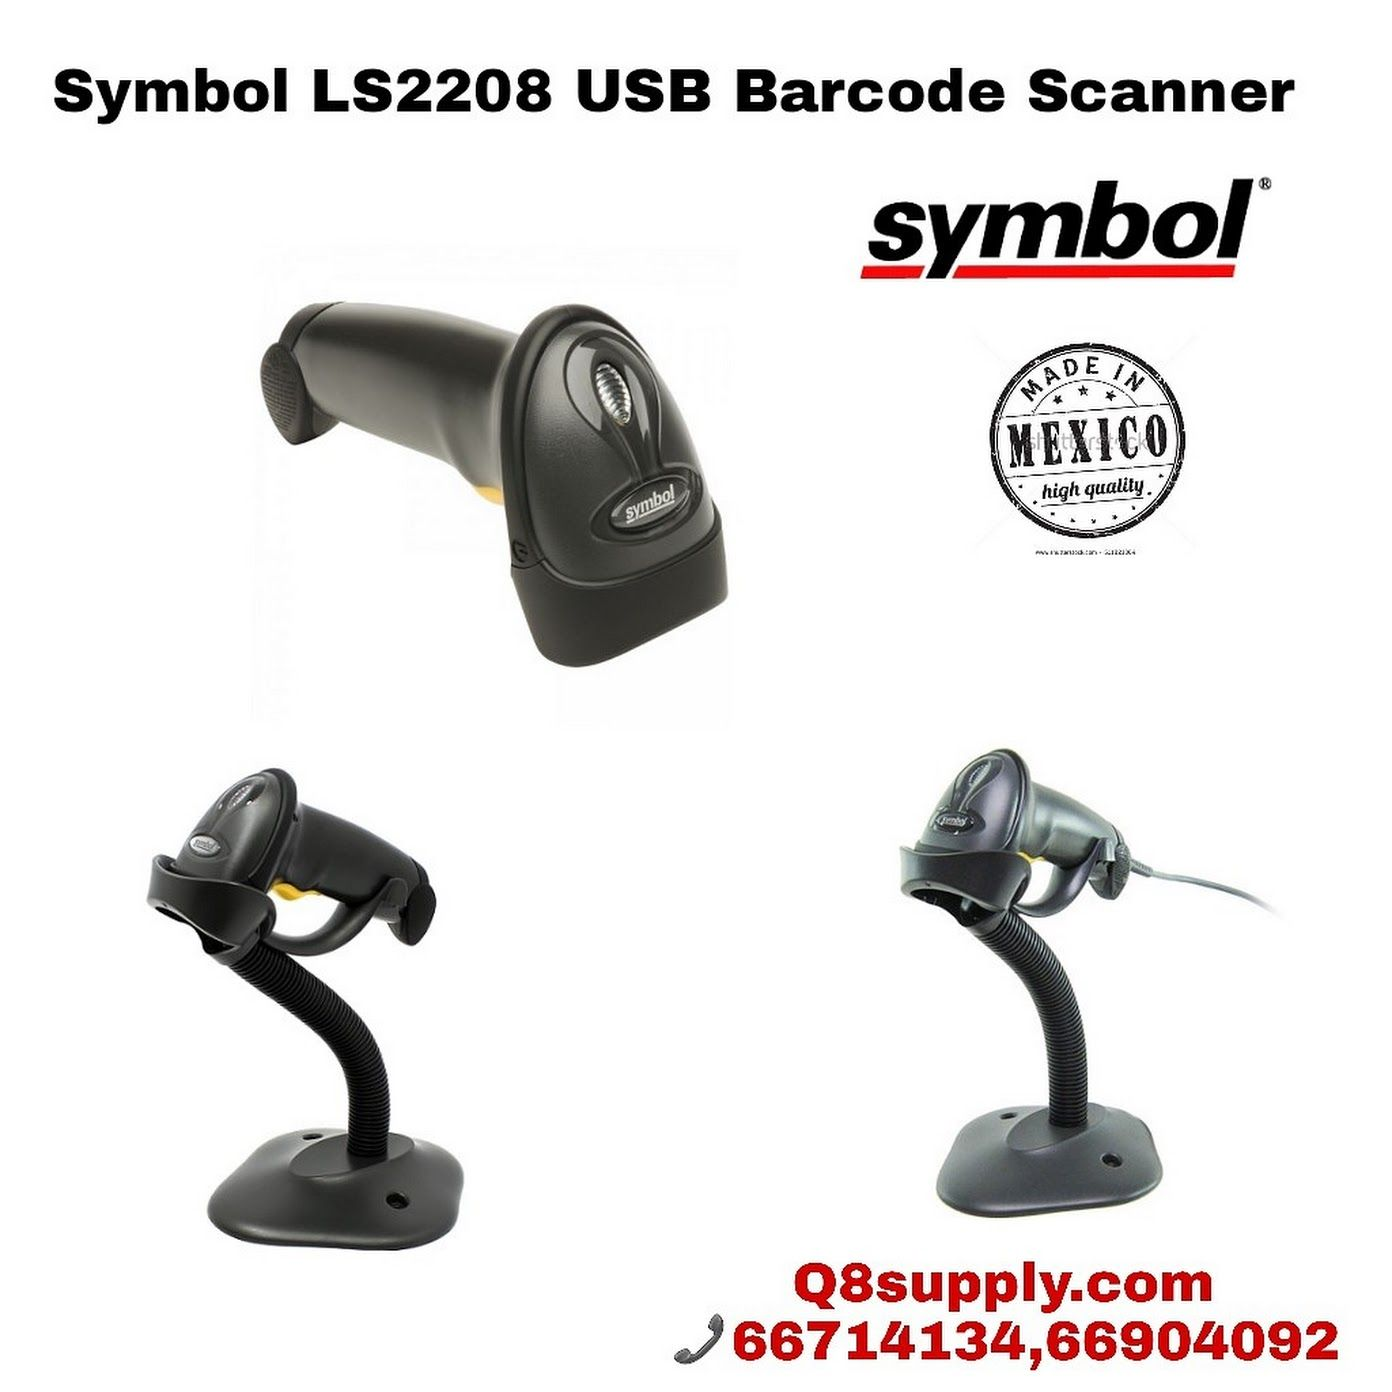 Symbol Ls2208 Usb Barcode Scanner It Provides Fast Reliable